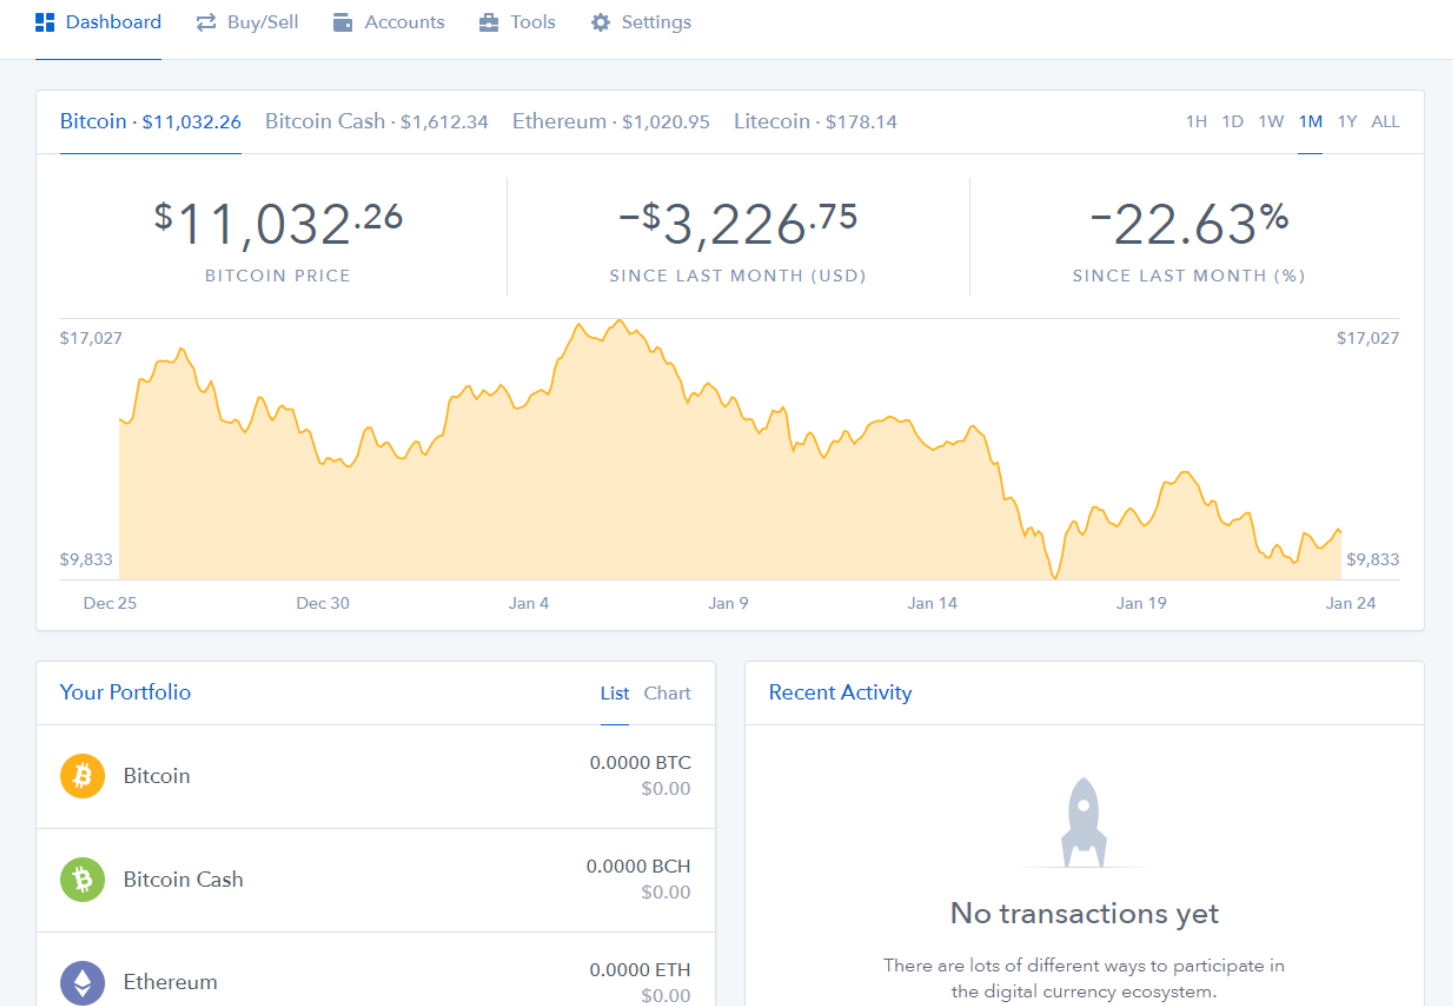 Coinbase dashboard on the first login